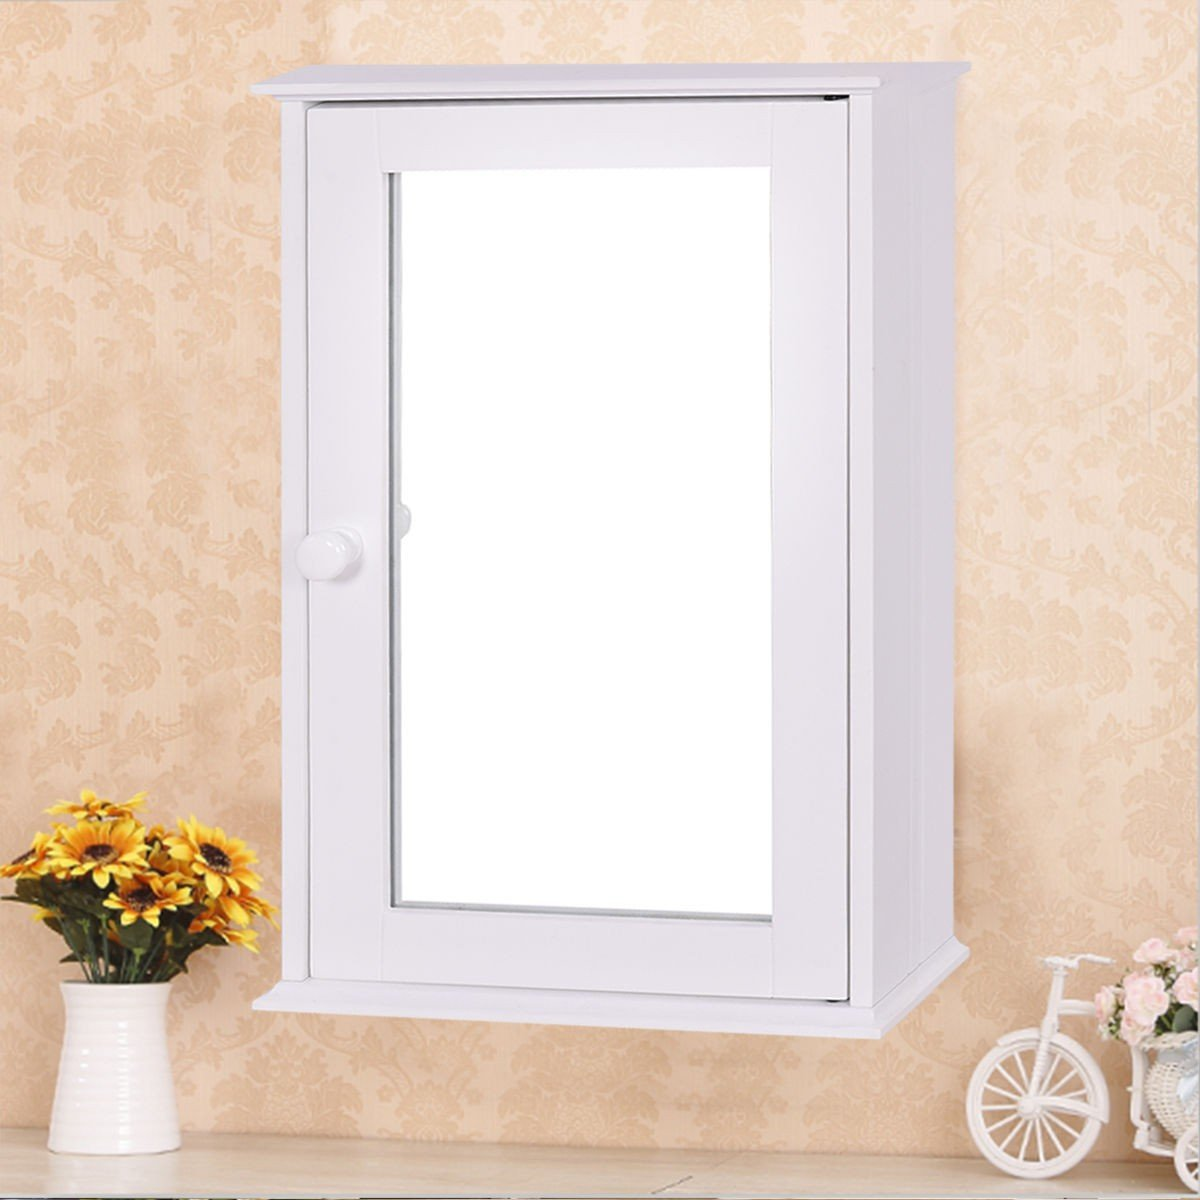 Bathroom Wall Cabinet with Single Mirror Door - By Choice Products